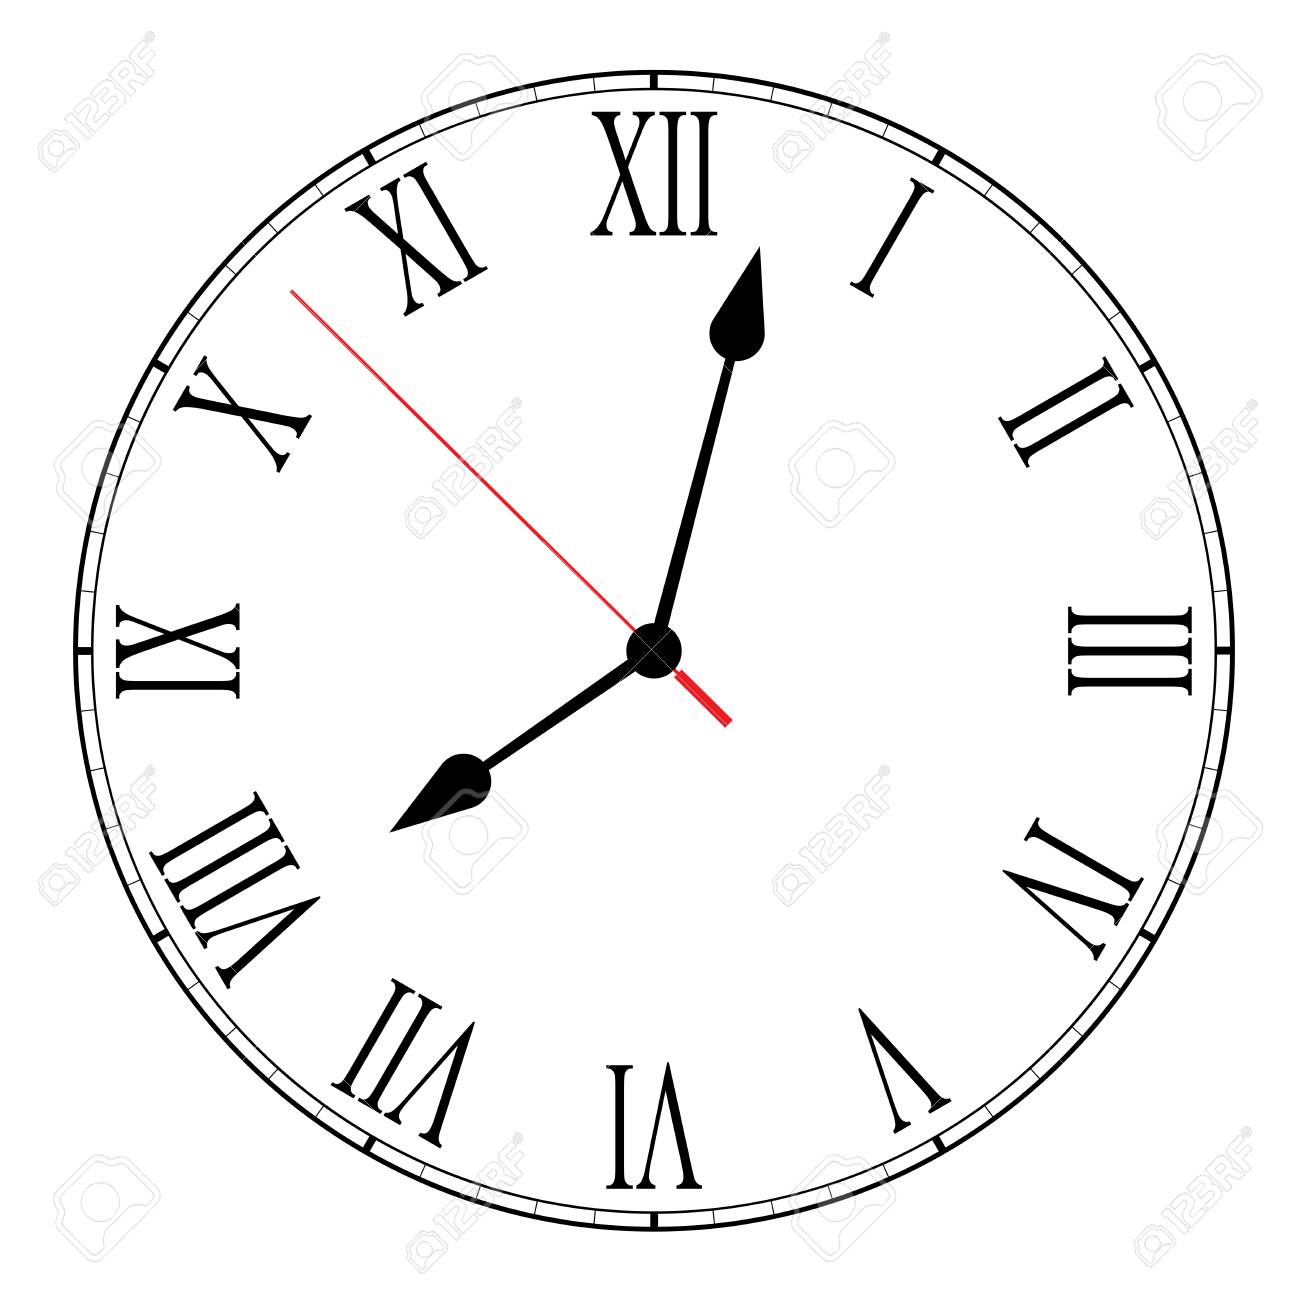 Image result for image of clock face